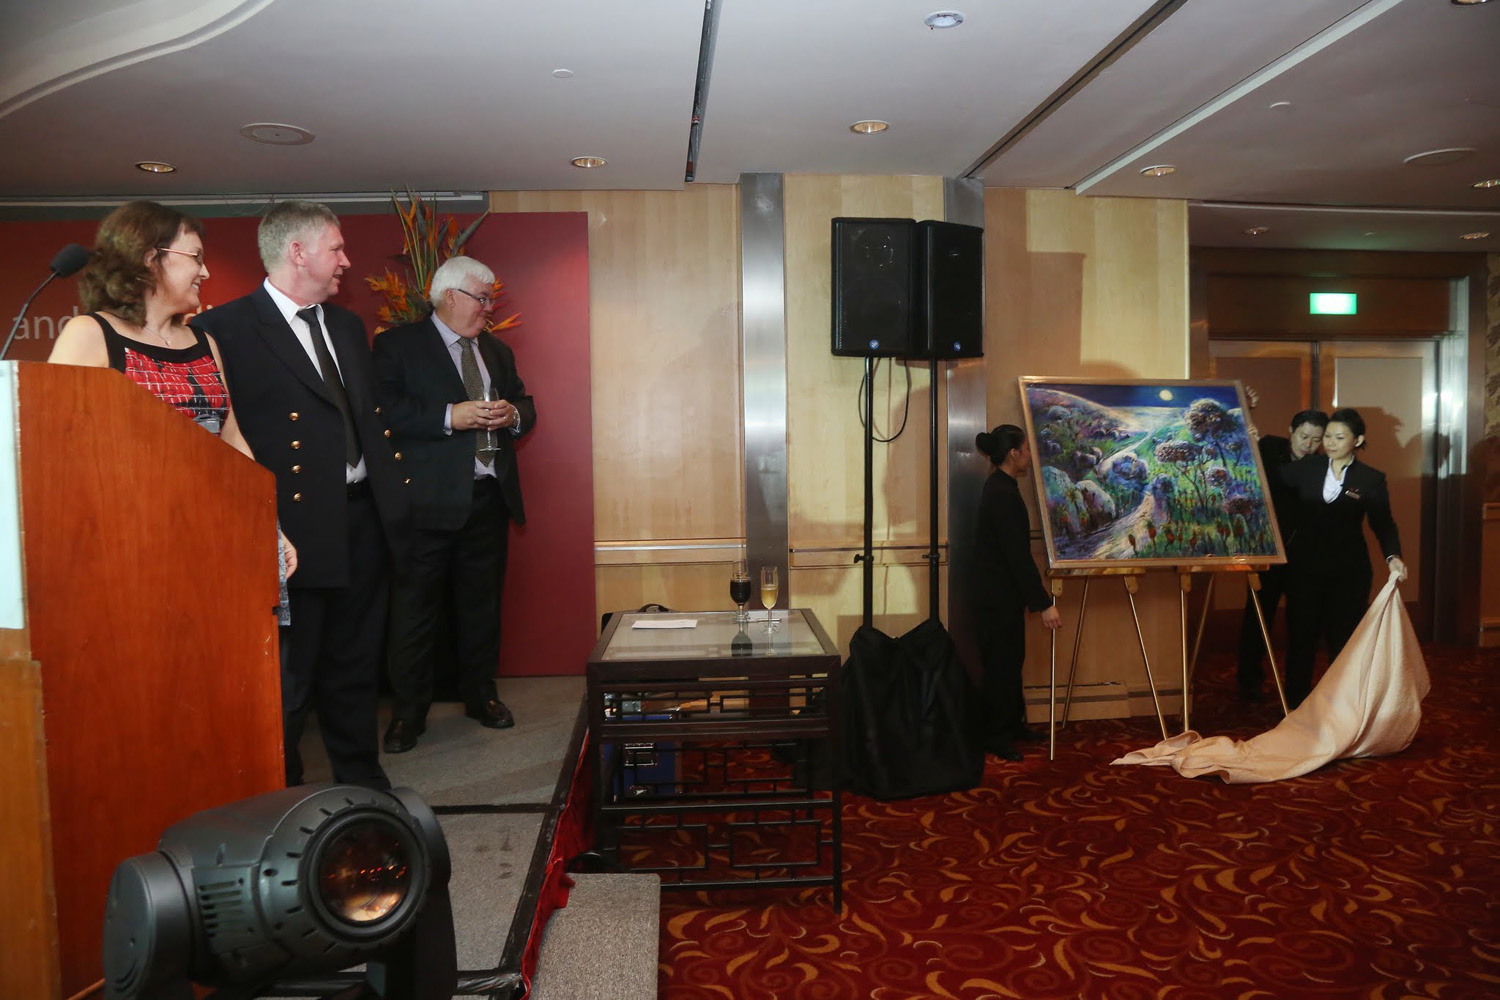 The unveiling of Jeremy's painting